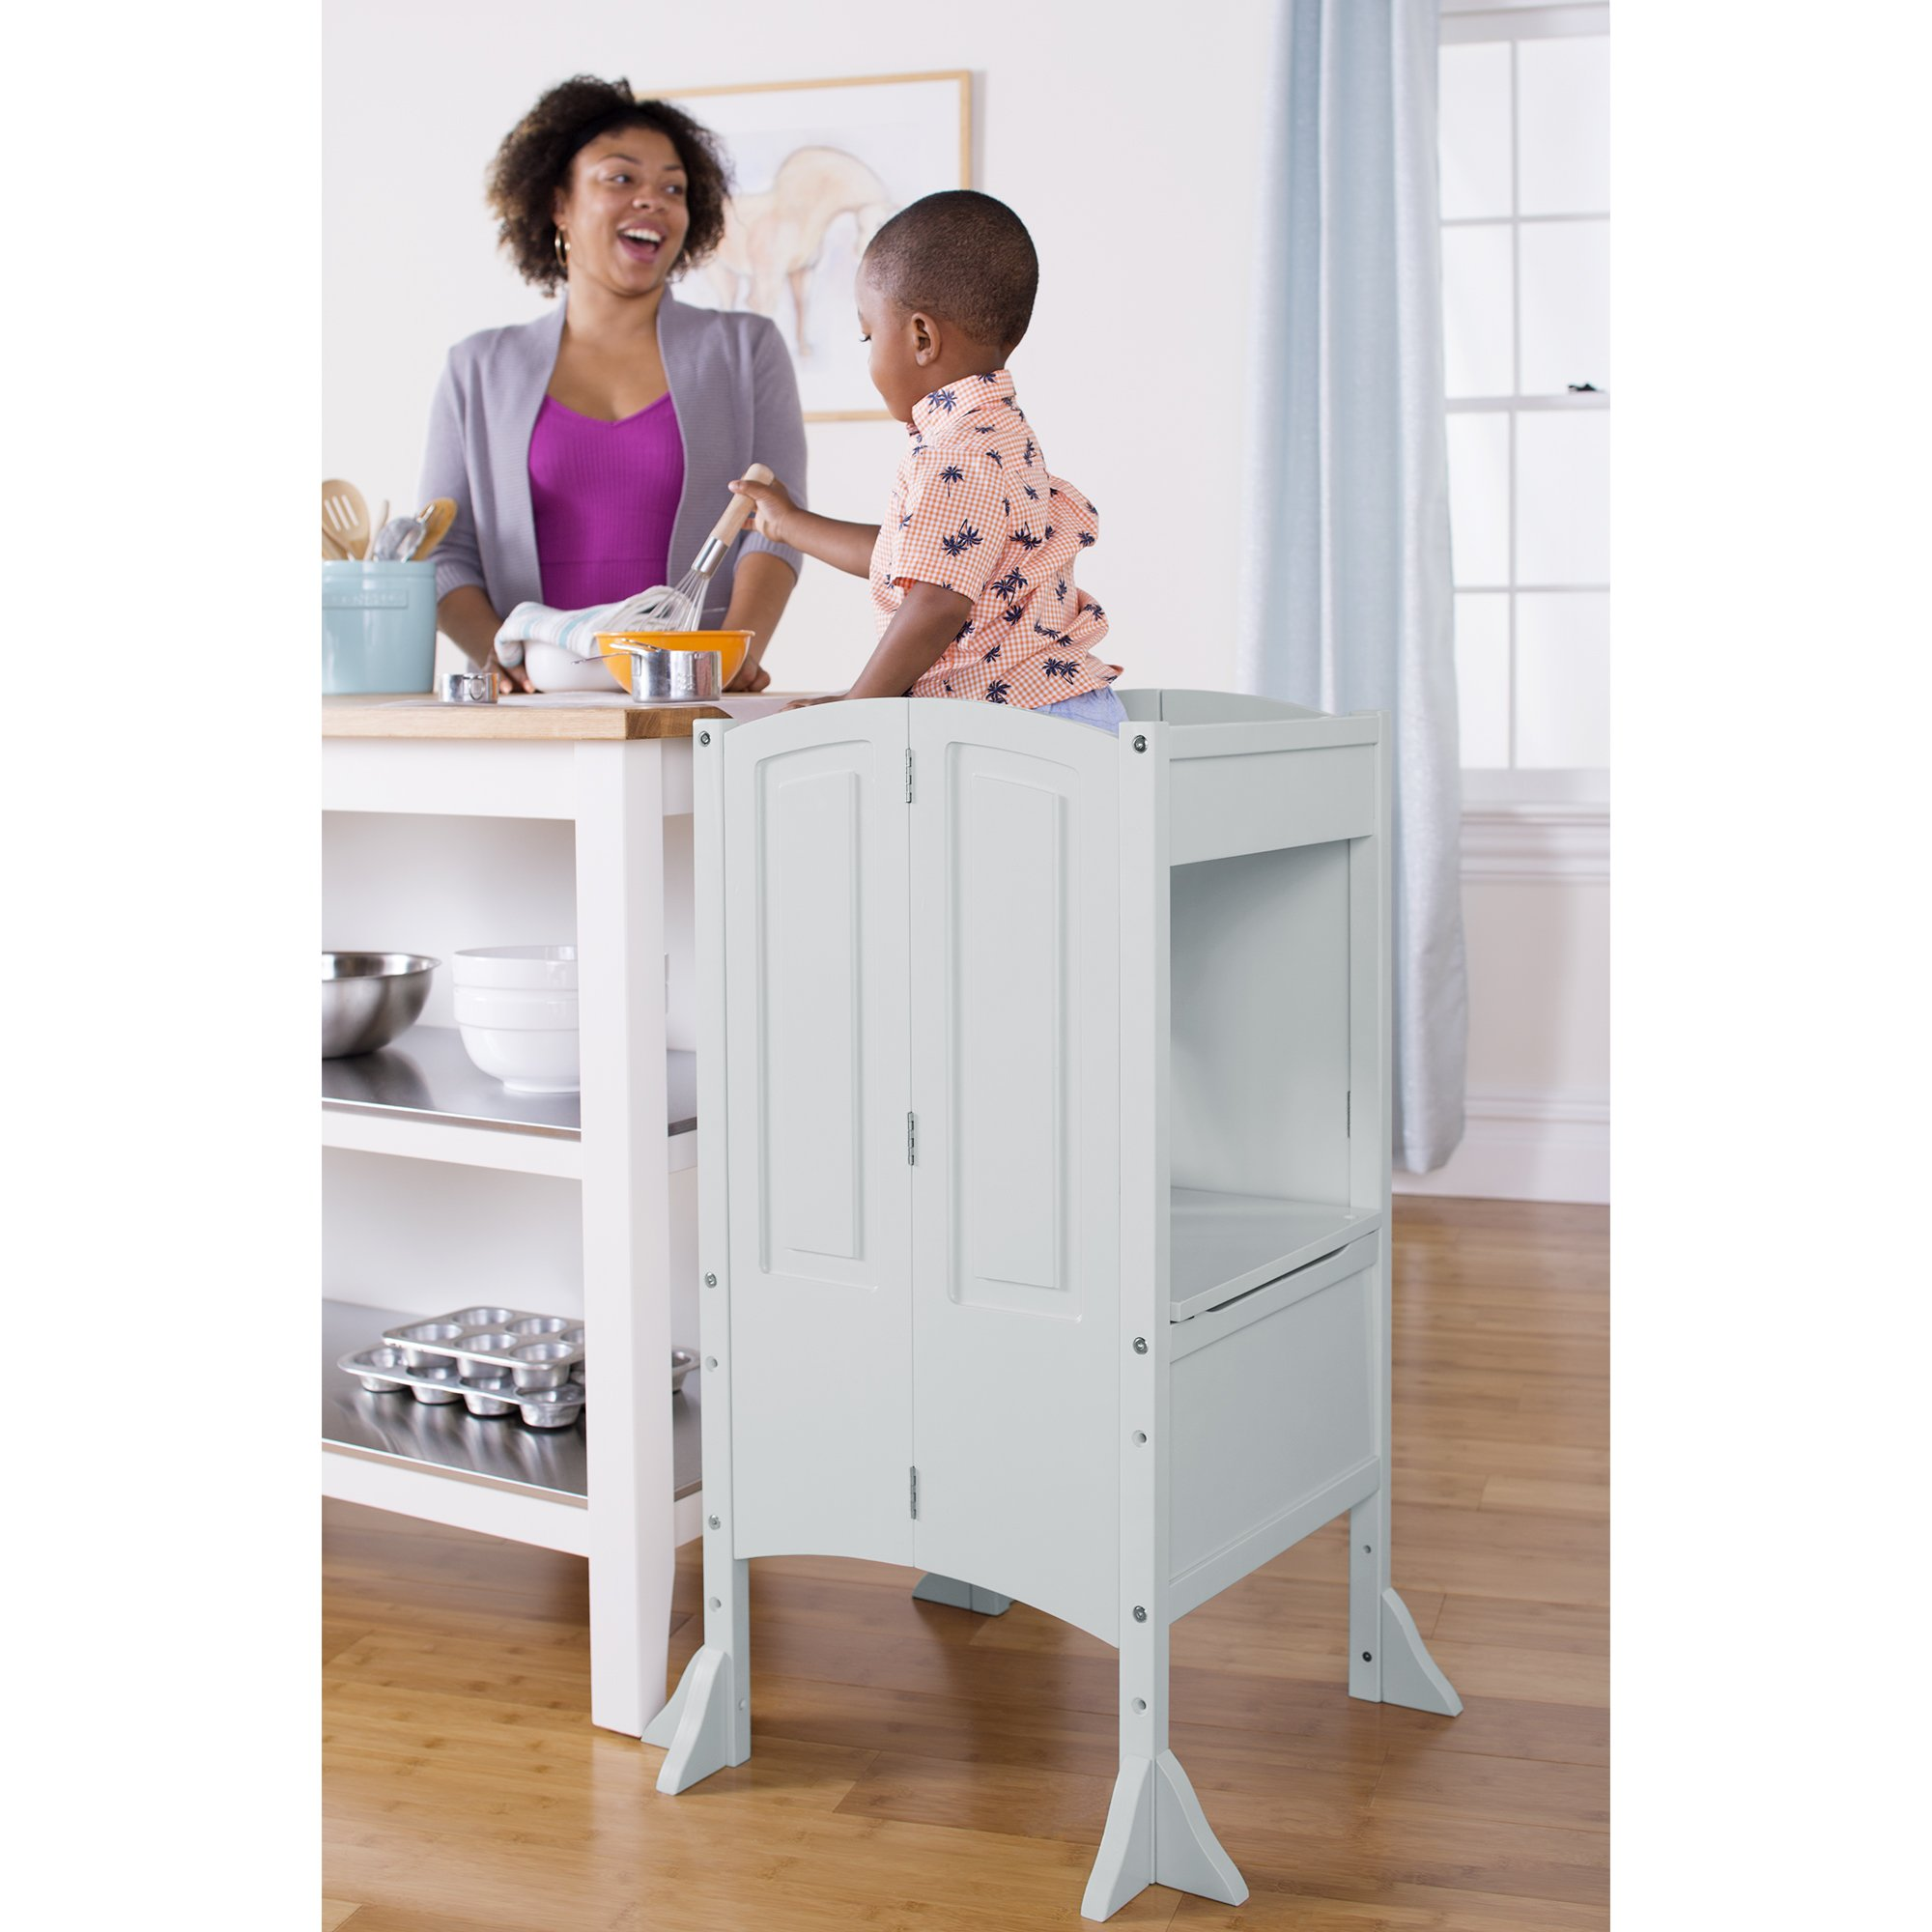 Guidecraft Heartwood Kitchen Helper Stool - Gray W/Keeper and Non-Slip Mat: Adjustable Counter Height Step Up, Folding Safety Cooking Step Stool for Toddlers - Little Kids Learning Furniture by Guidecraft